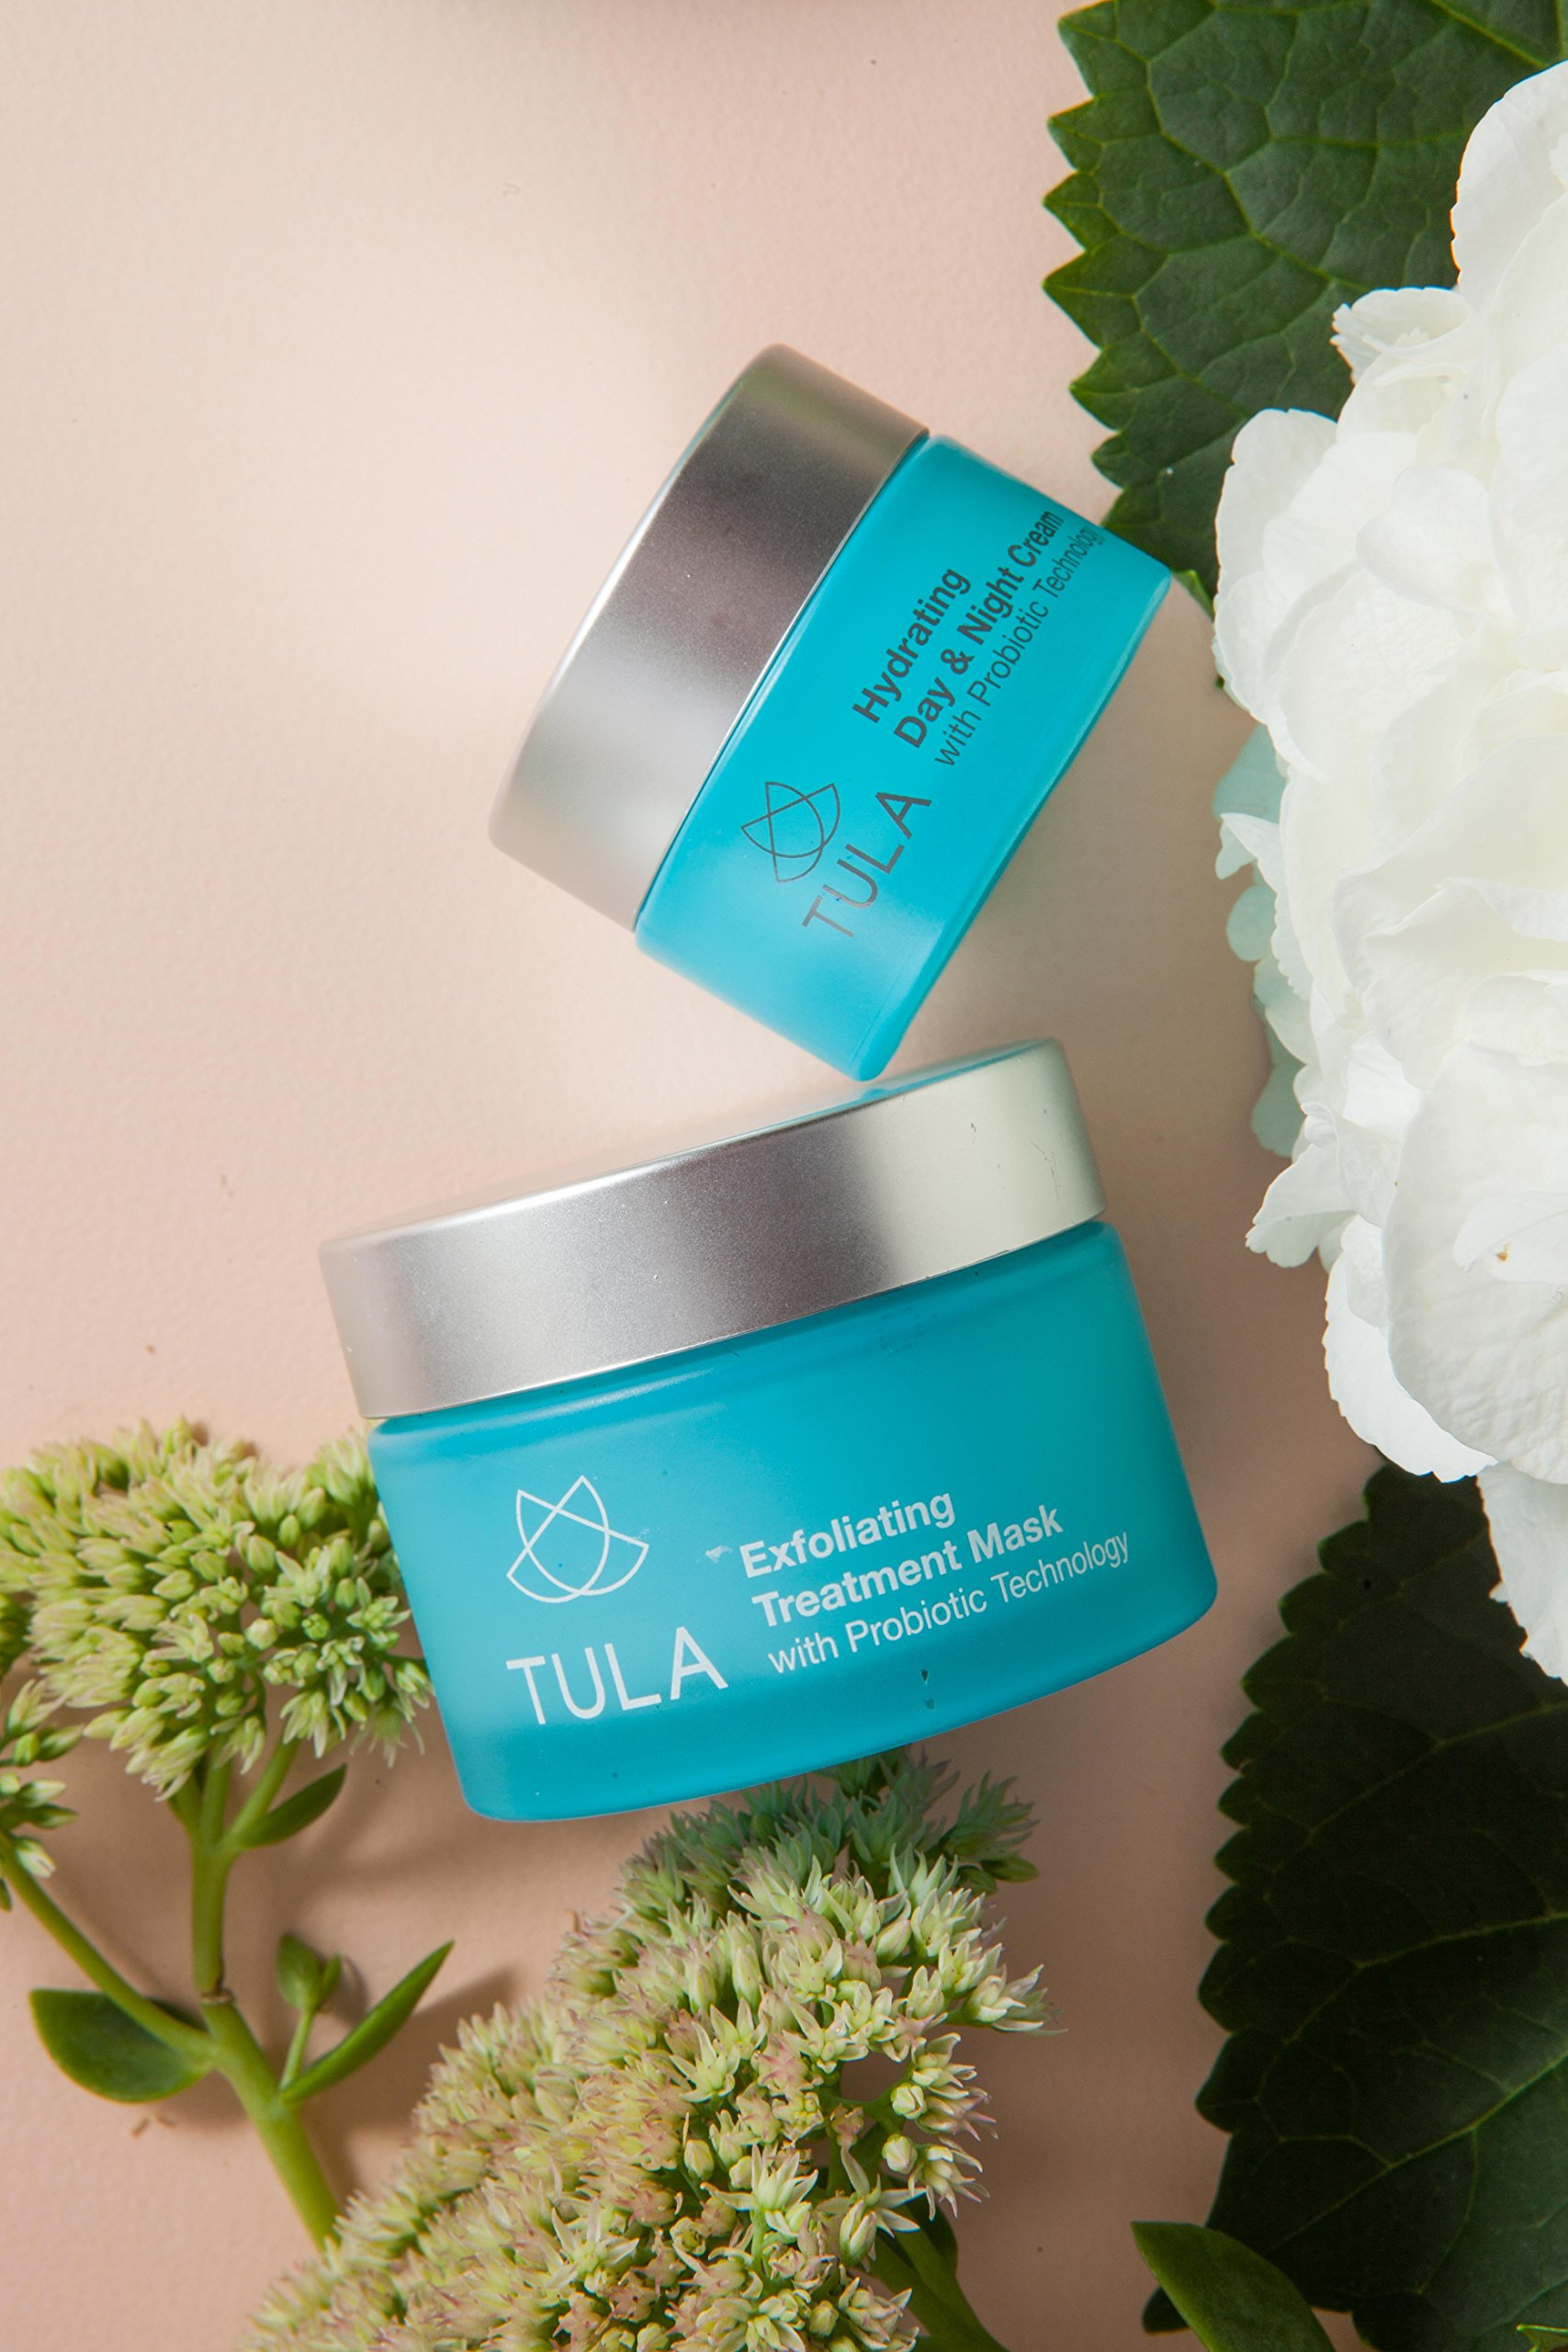 TULA Probiotic Skin Care Exfoliating Dual Phase Treatment Mask with Hydrating Vitamin E, Soybean Oil and Bentonite Clay, 1.7 oz